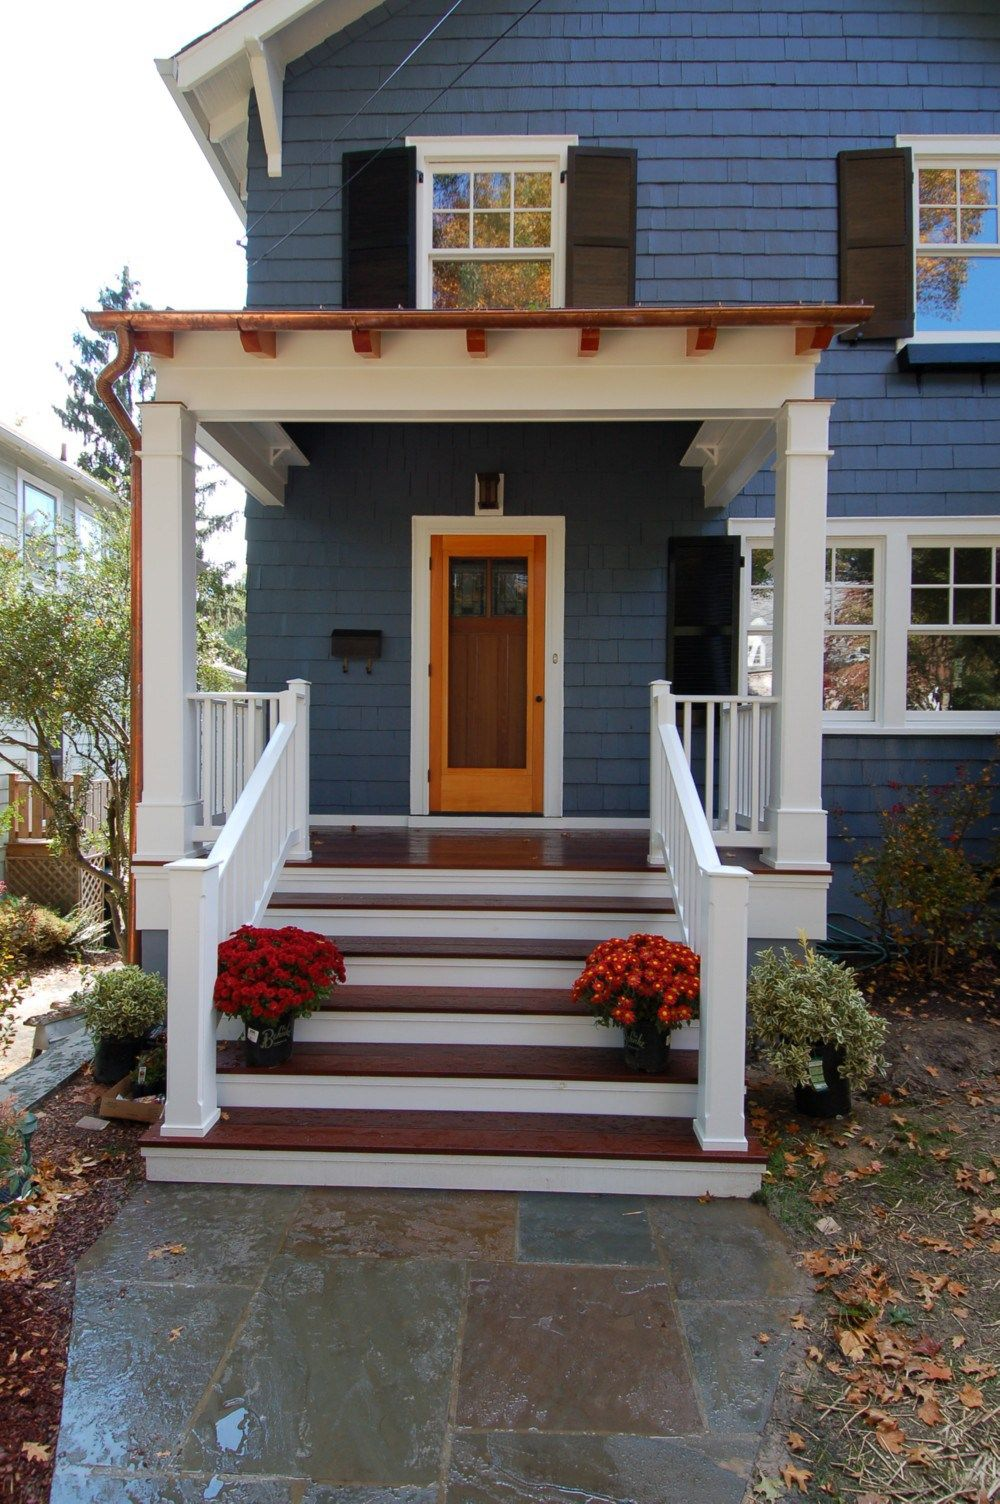 Awesome Small Front Porch Design Ideas 11 Curb Appeal